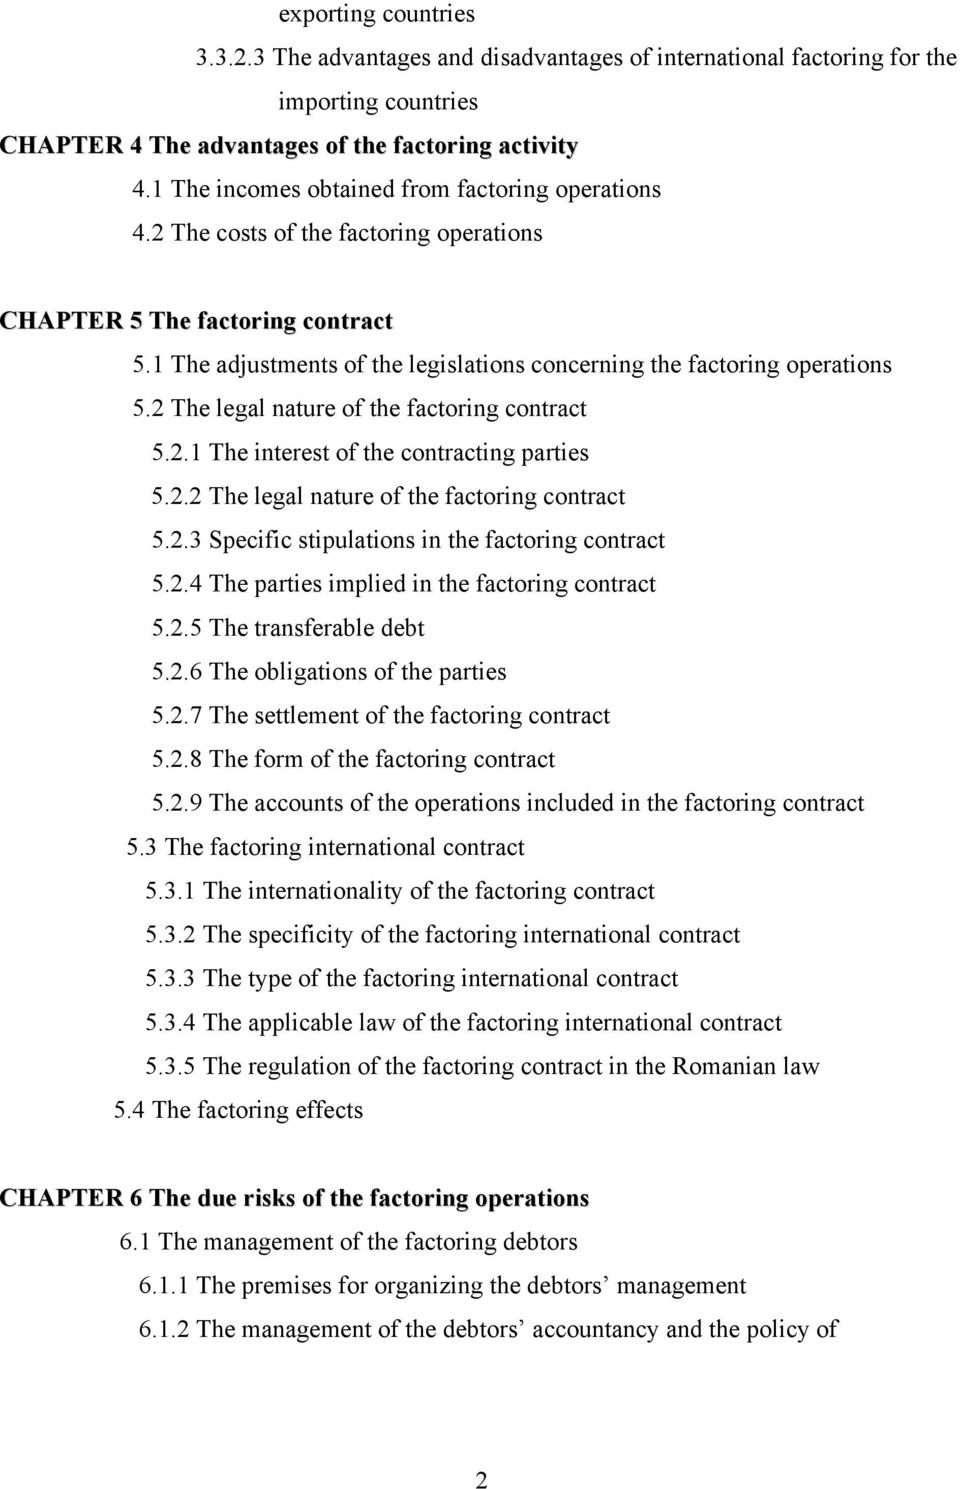 1 The adjustments of the legislations concerning the factoring operations 5.2 The legal nature of the factoring contract 5.2.1 The interest of the contracting parties 5.2.2 The legal nature of the factoring contract 5.2.3 Specific stipulations in the factoring contract 5.